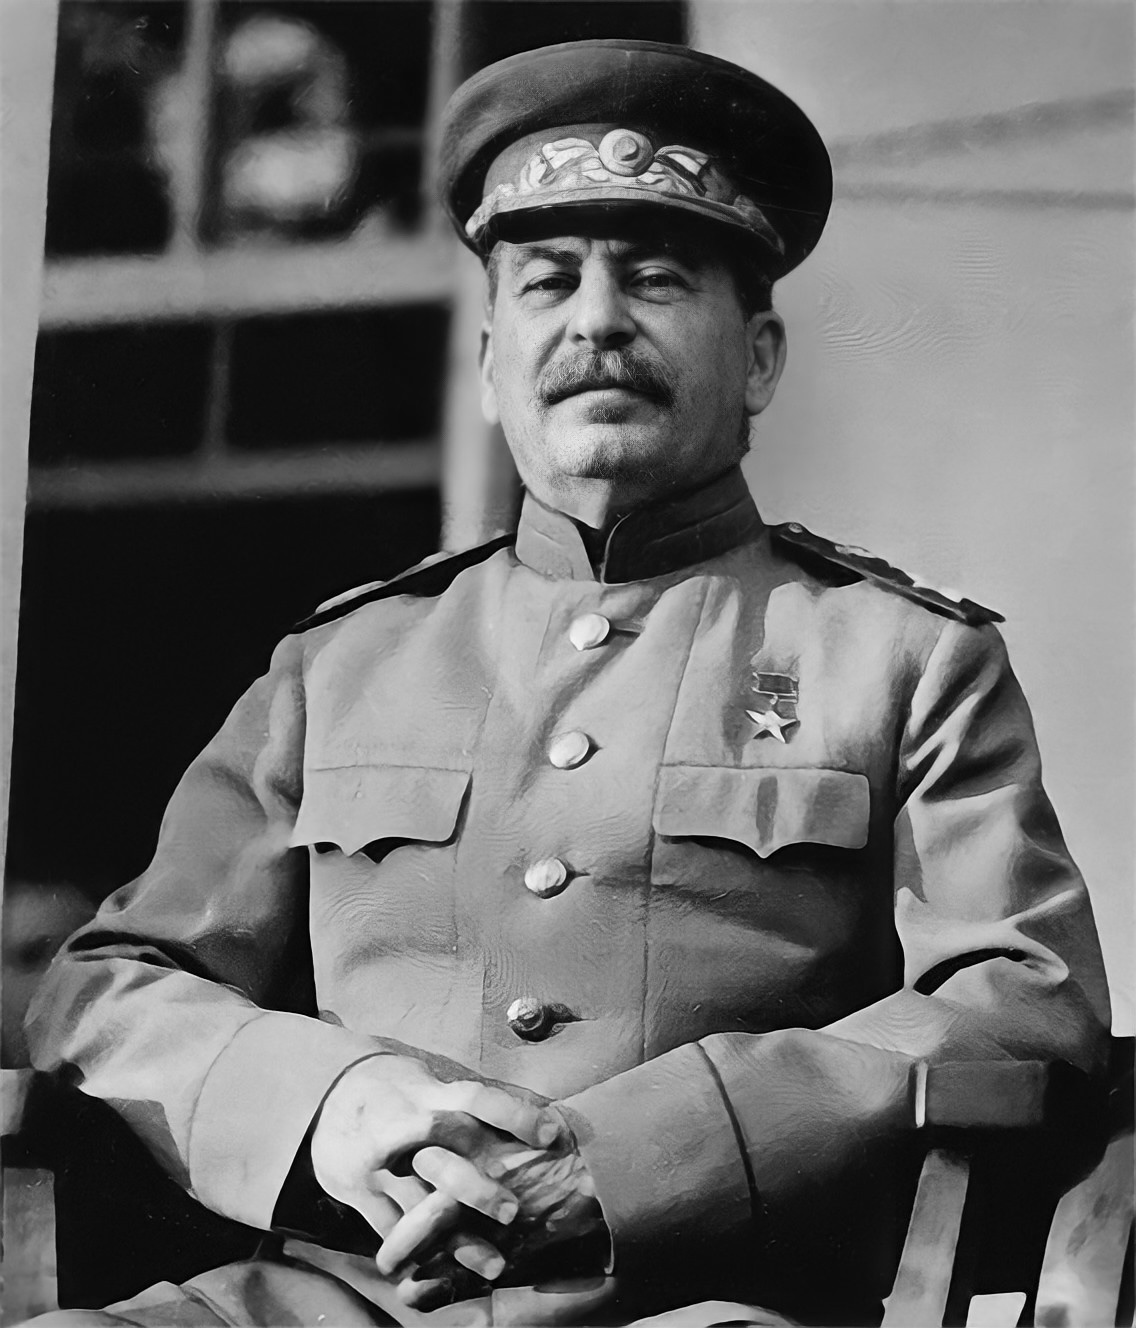 http://upload.wikimedia.org/wikipedia/commons/9/9b/CroppedStalin1943.jpg